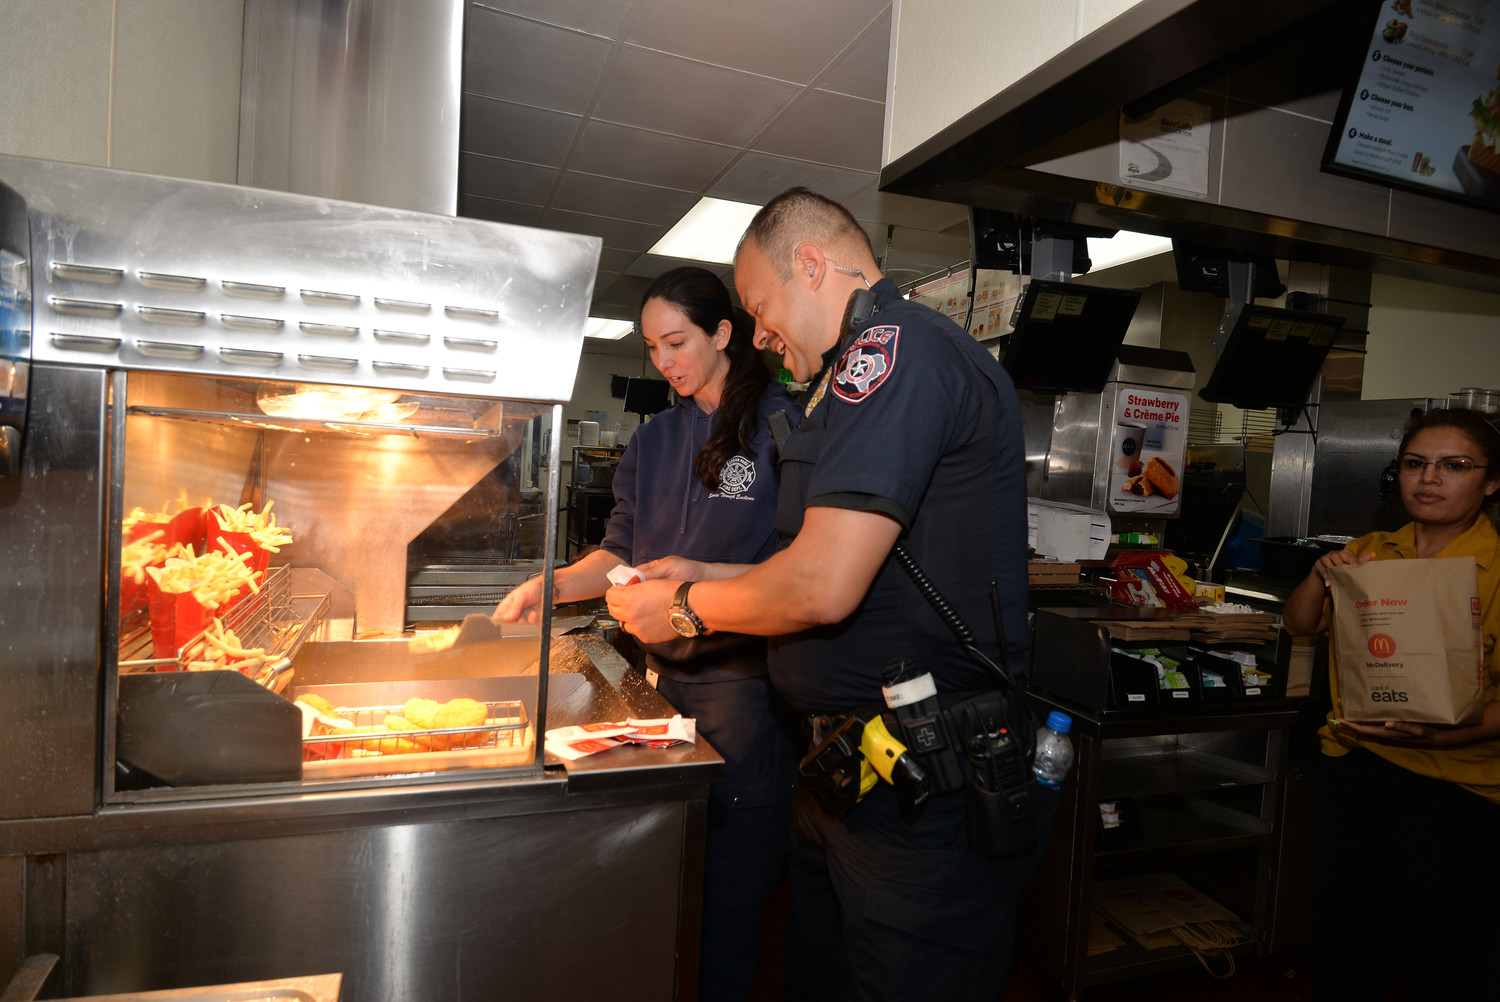 Cedar Park police officer David Camacho and Cedar Park firefighter Brenda Bonja prepare fries for customers at McDonalds.